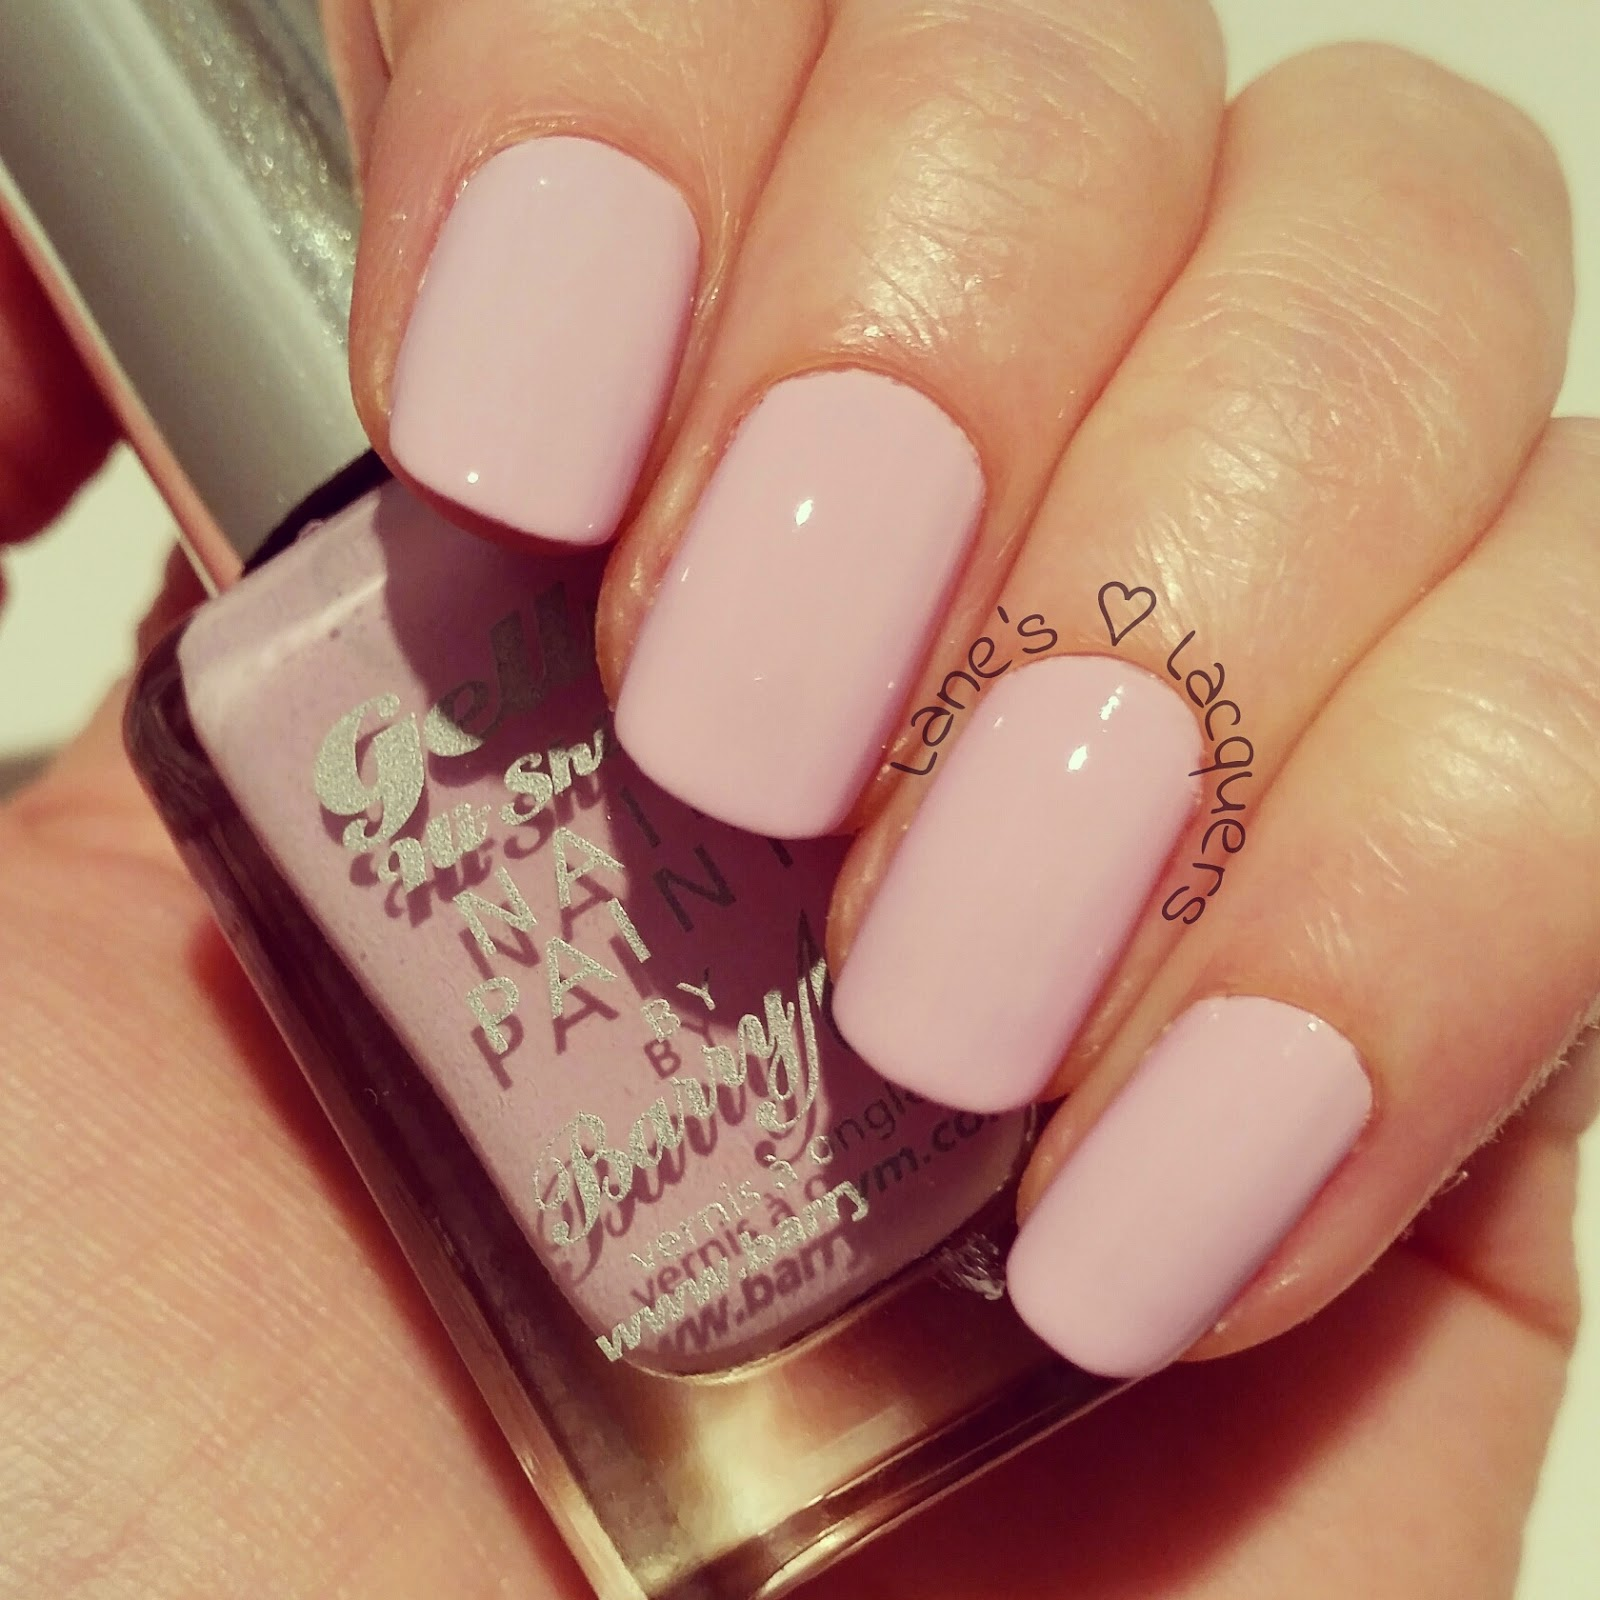 new-barry-m-gelly-fondant-swatch-nails